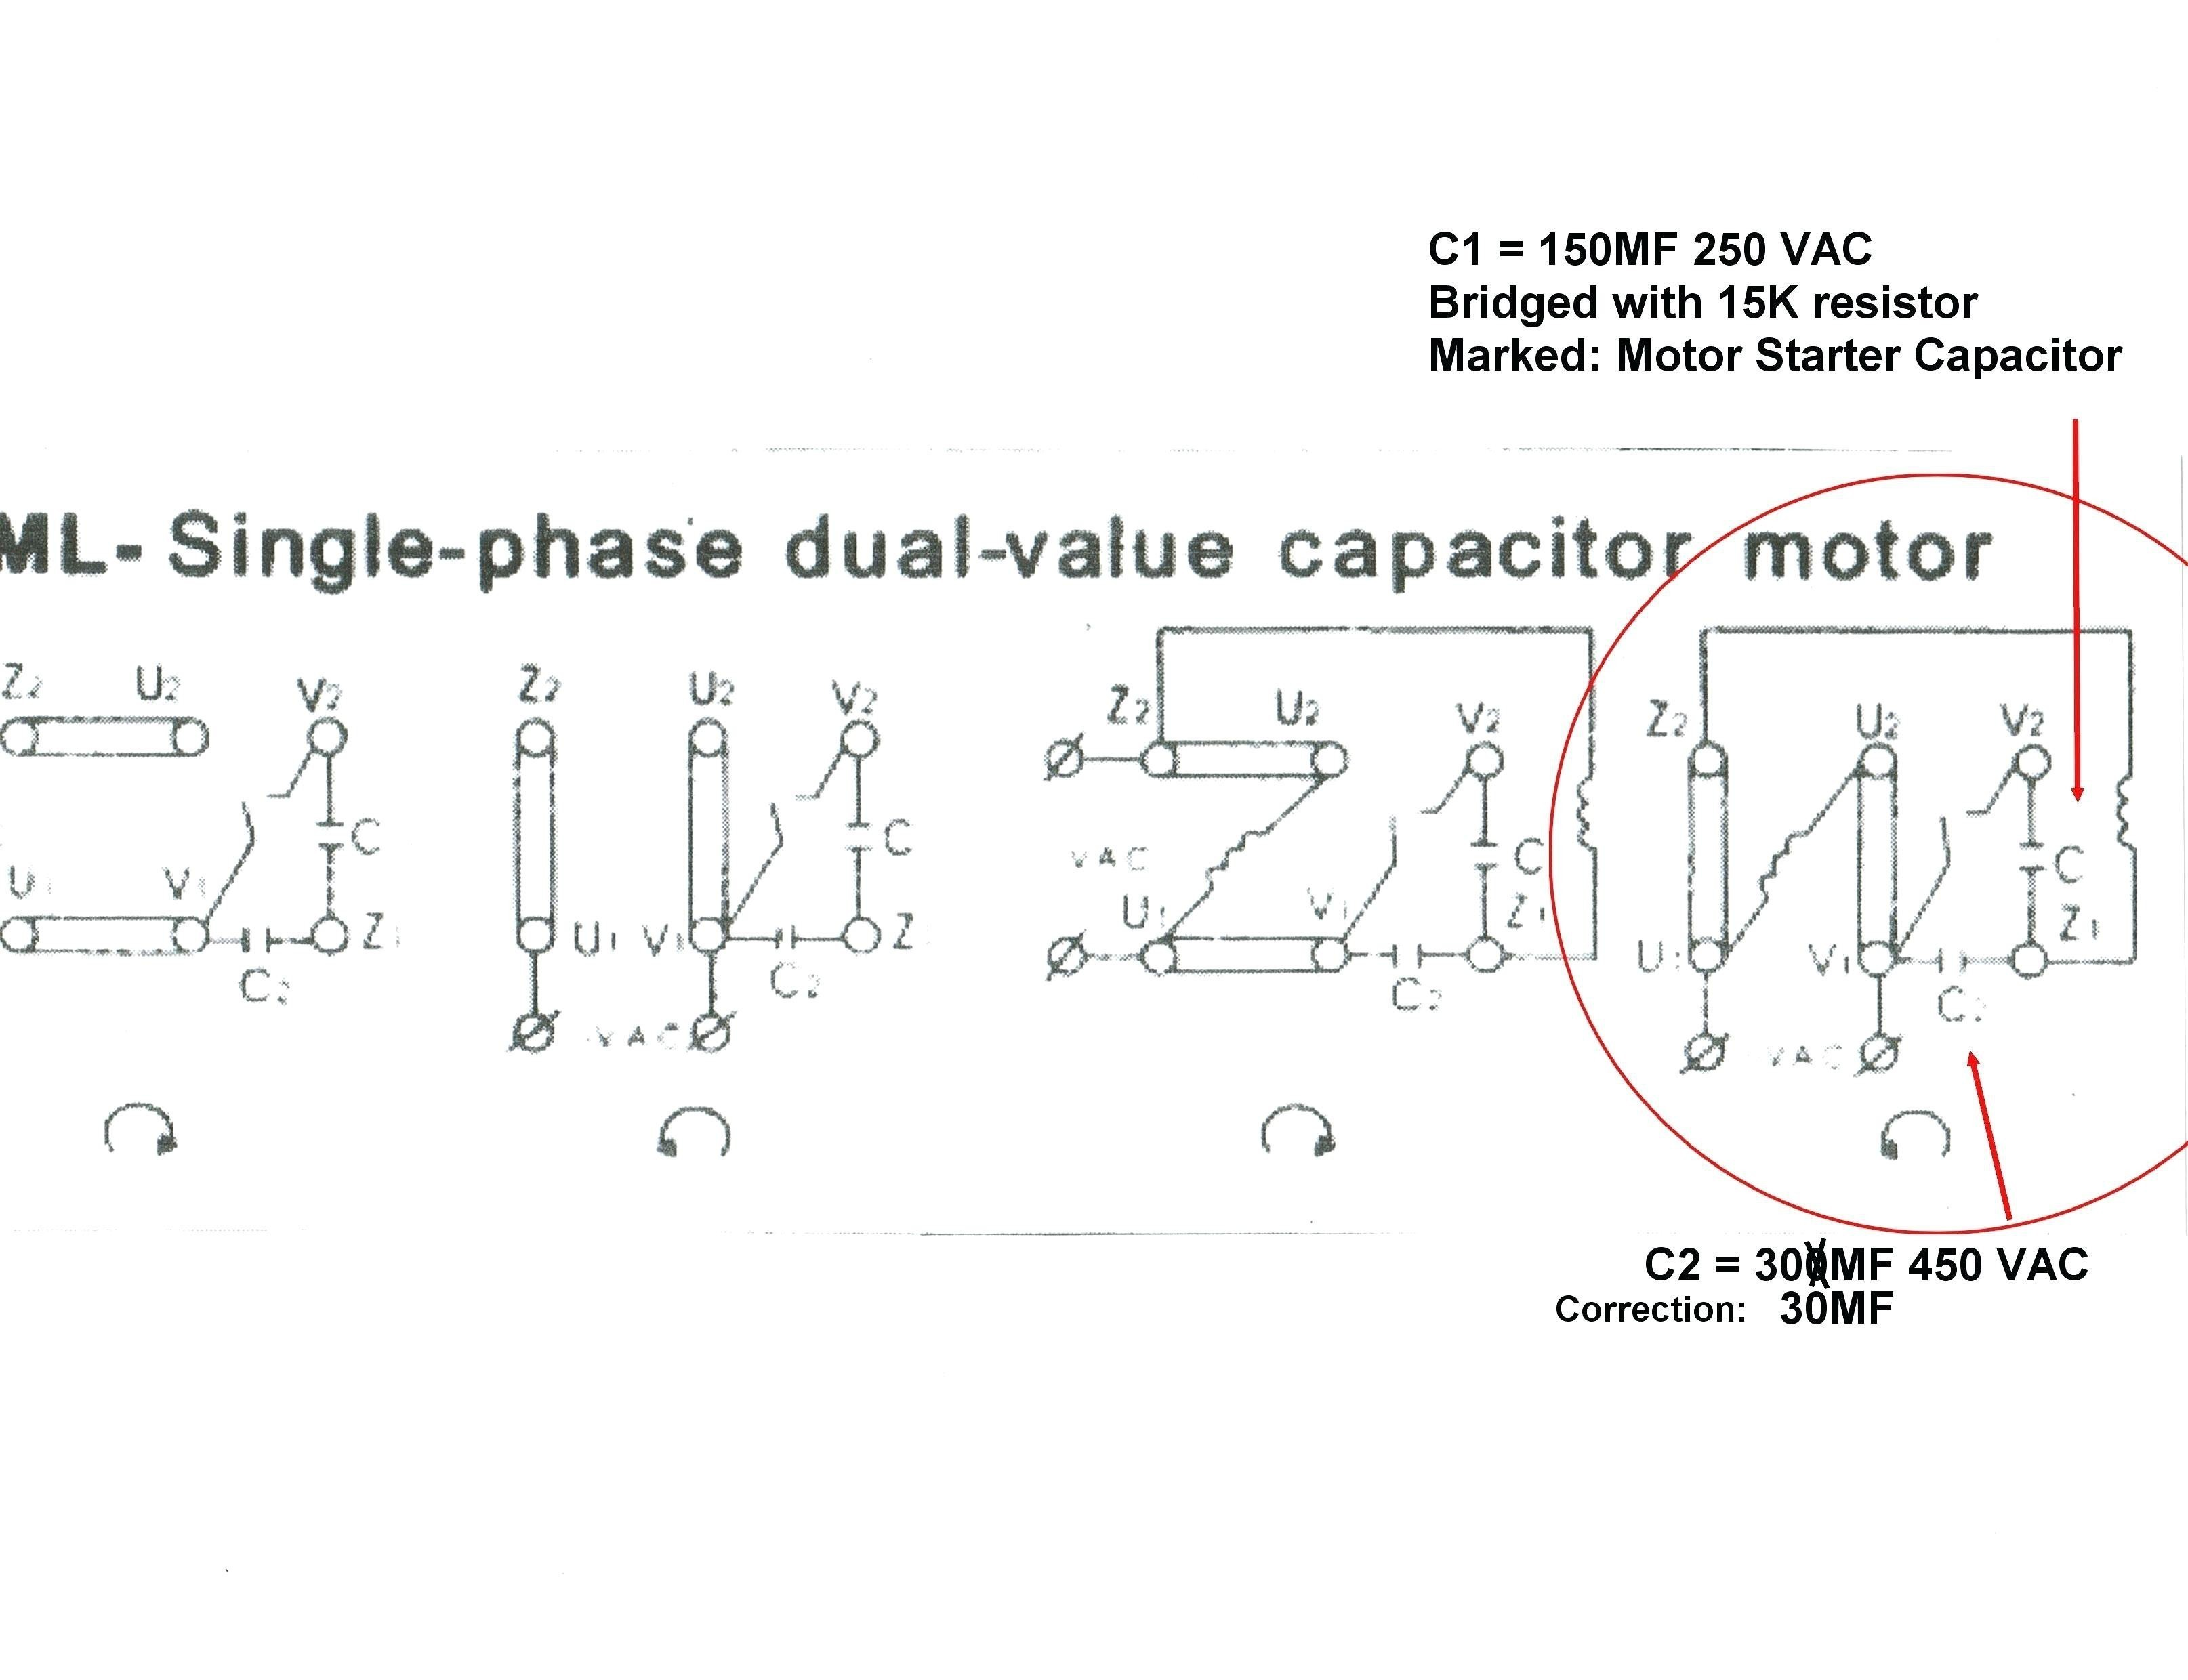 [SCHEMATICS_49CH]  096 3 Phase 6 Lead Motor Wiring Diagram | Wiring Library | 12 Lead Motor Wiring Diagram Dayton |  | Wiring Library